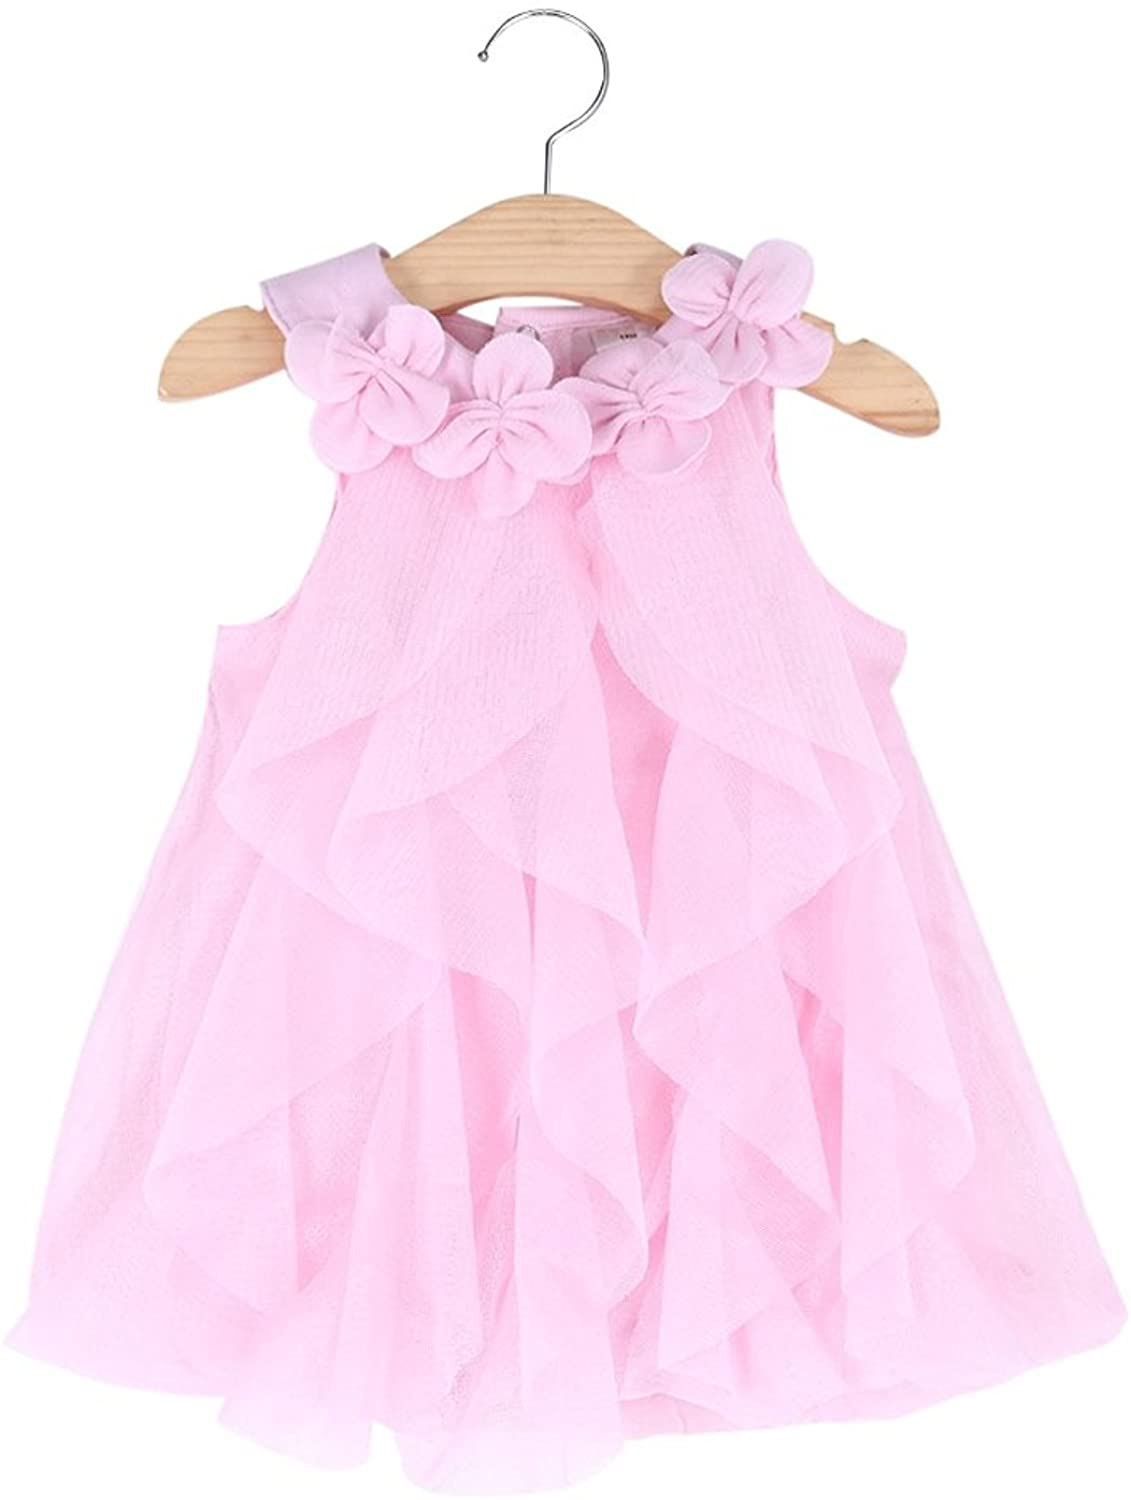 Popular popular WZSYGDTC 0-24 Months Baby Party One-Piece Rom Girls Infant Max 57% OFF Dress